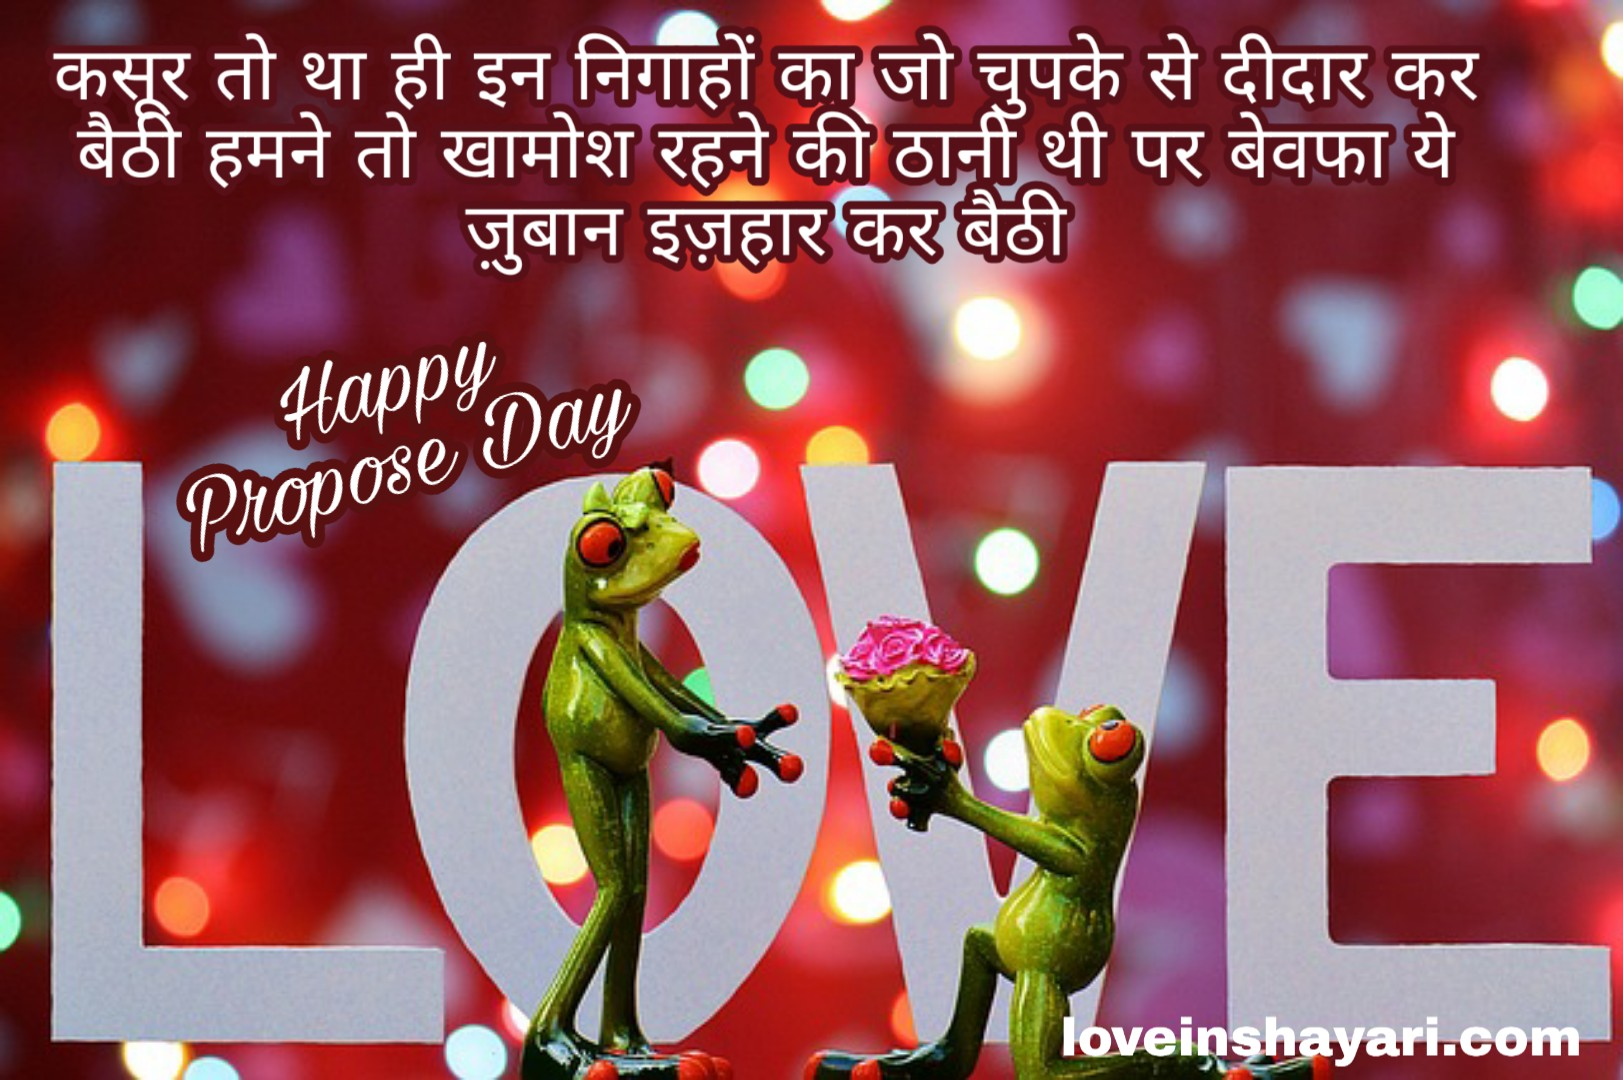 Photo of Happy Propose day 2020 wishes, shayari, quotes